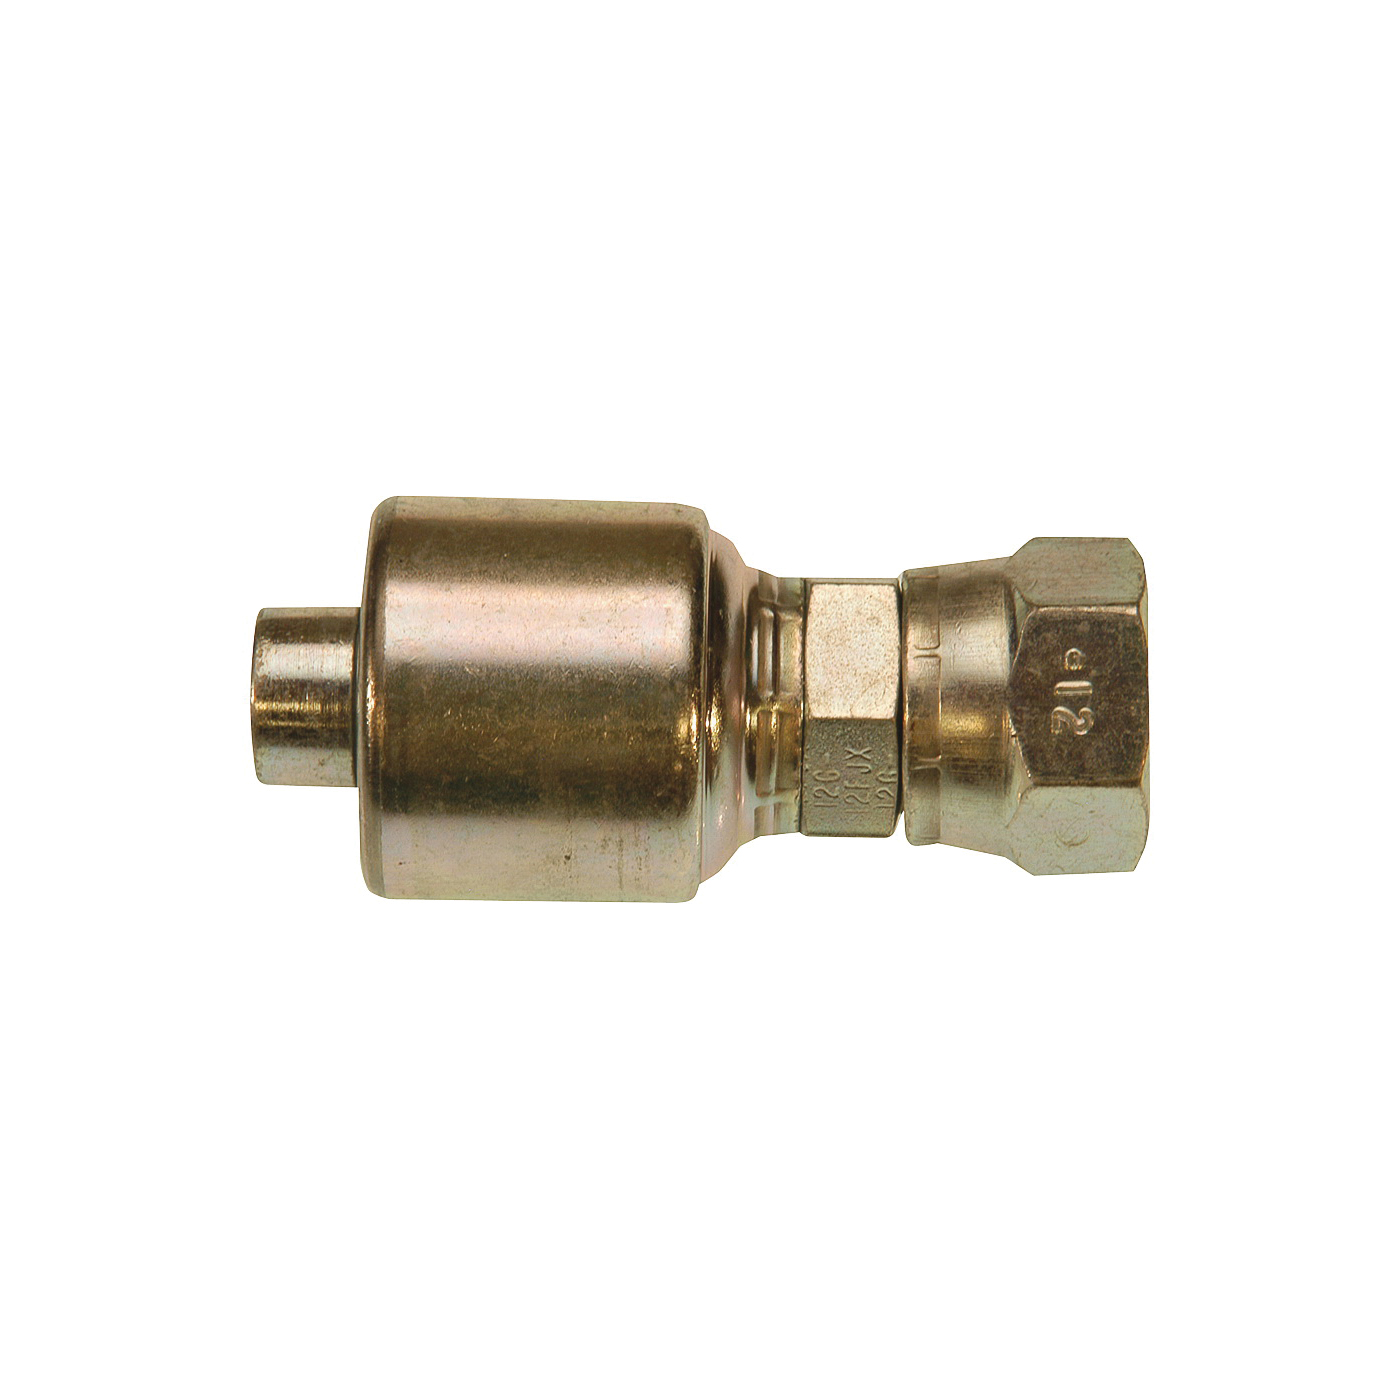 Picture of GATES MegaCrimp G25170-0608 Hose Coupling, 3/4-16, Crimp x JIC, Steel, Zinc